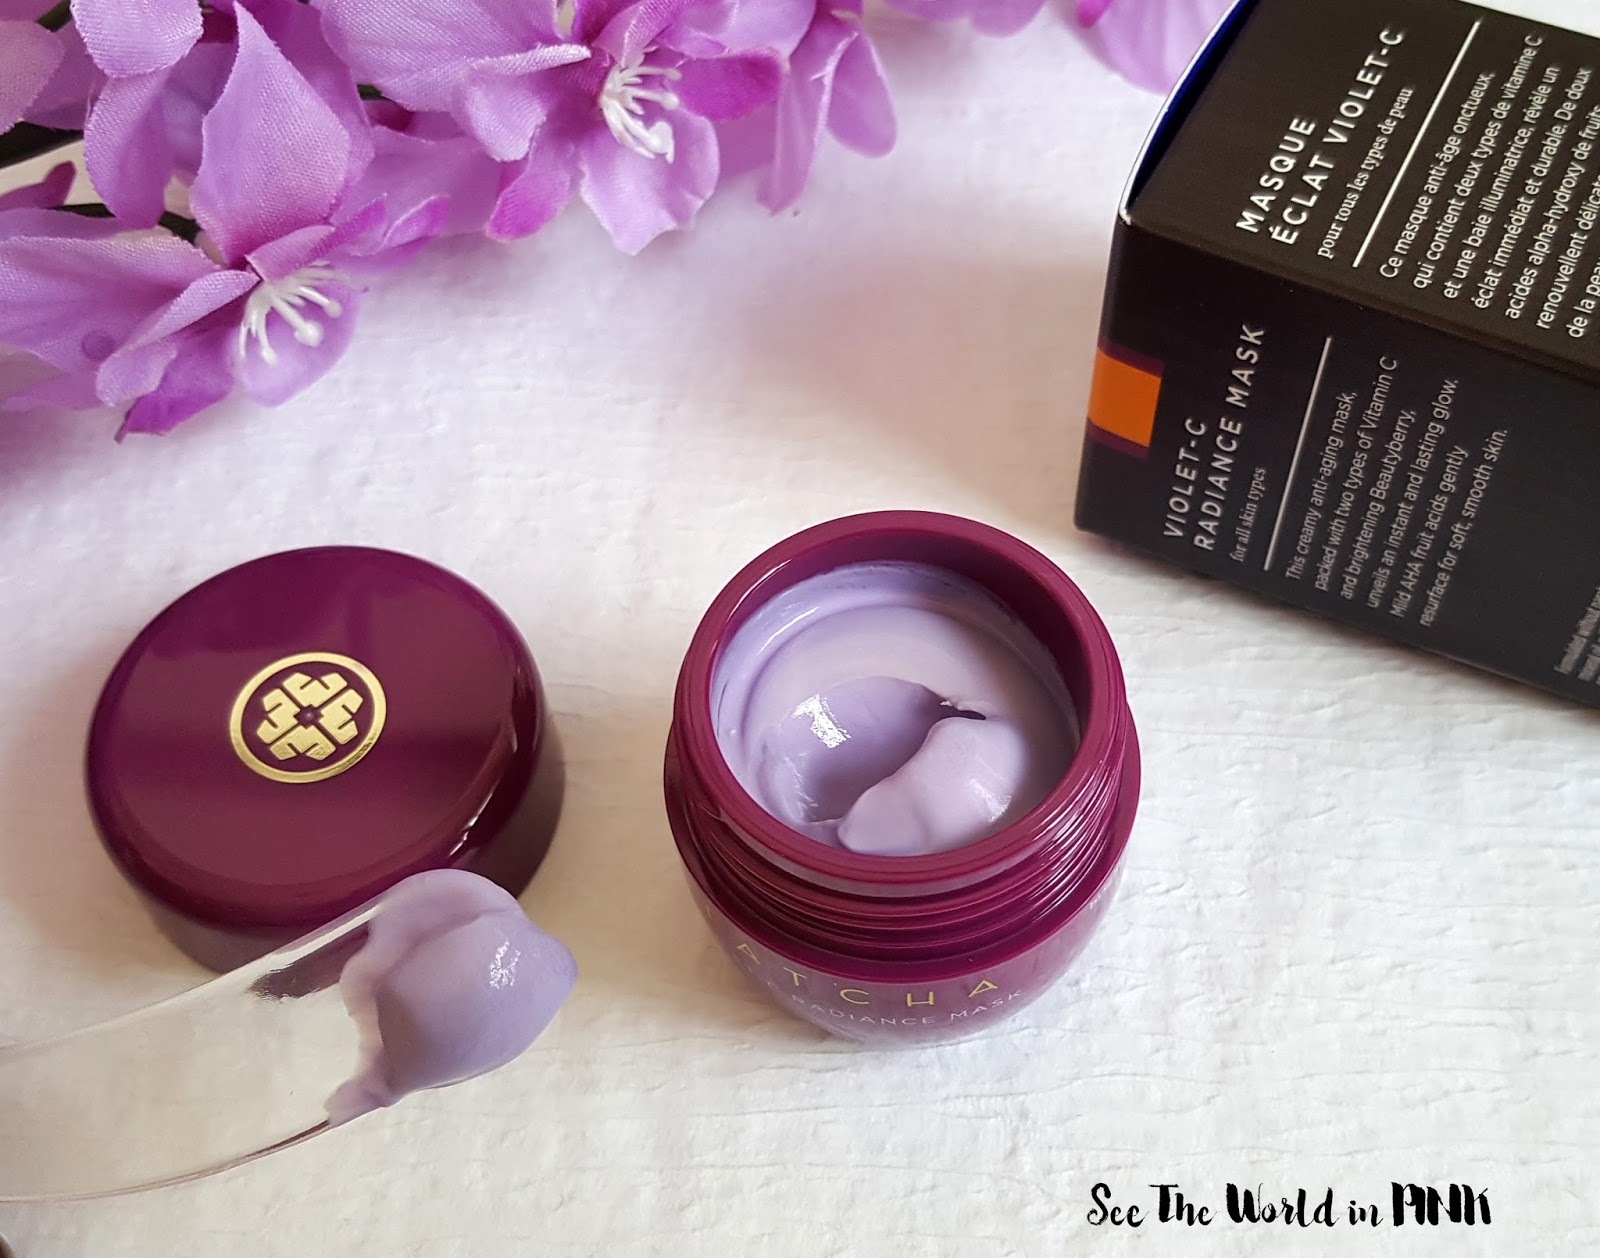 Mask Wednesday - New Tatcha Violet-C Radiance Mask Review!